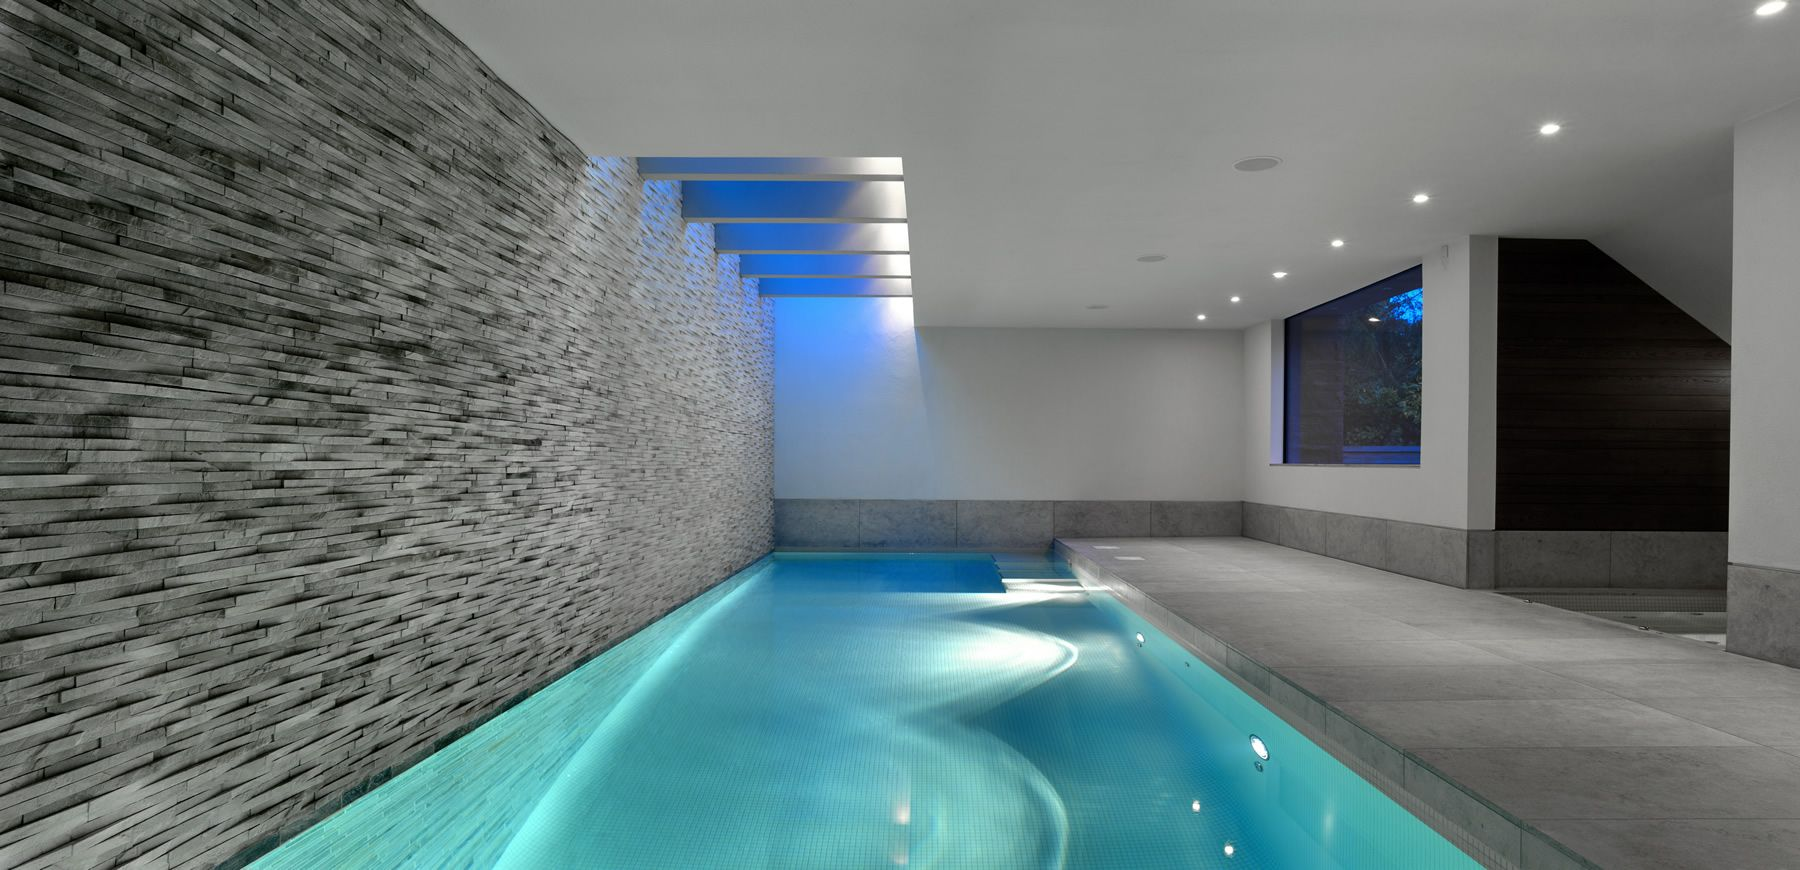 Indoor Pool Designs indoor swimming pool builders in florida Astounding Indoor Swimming Pool Design Image 381 50 Indoo Pool